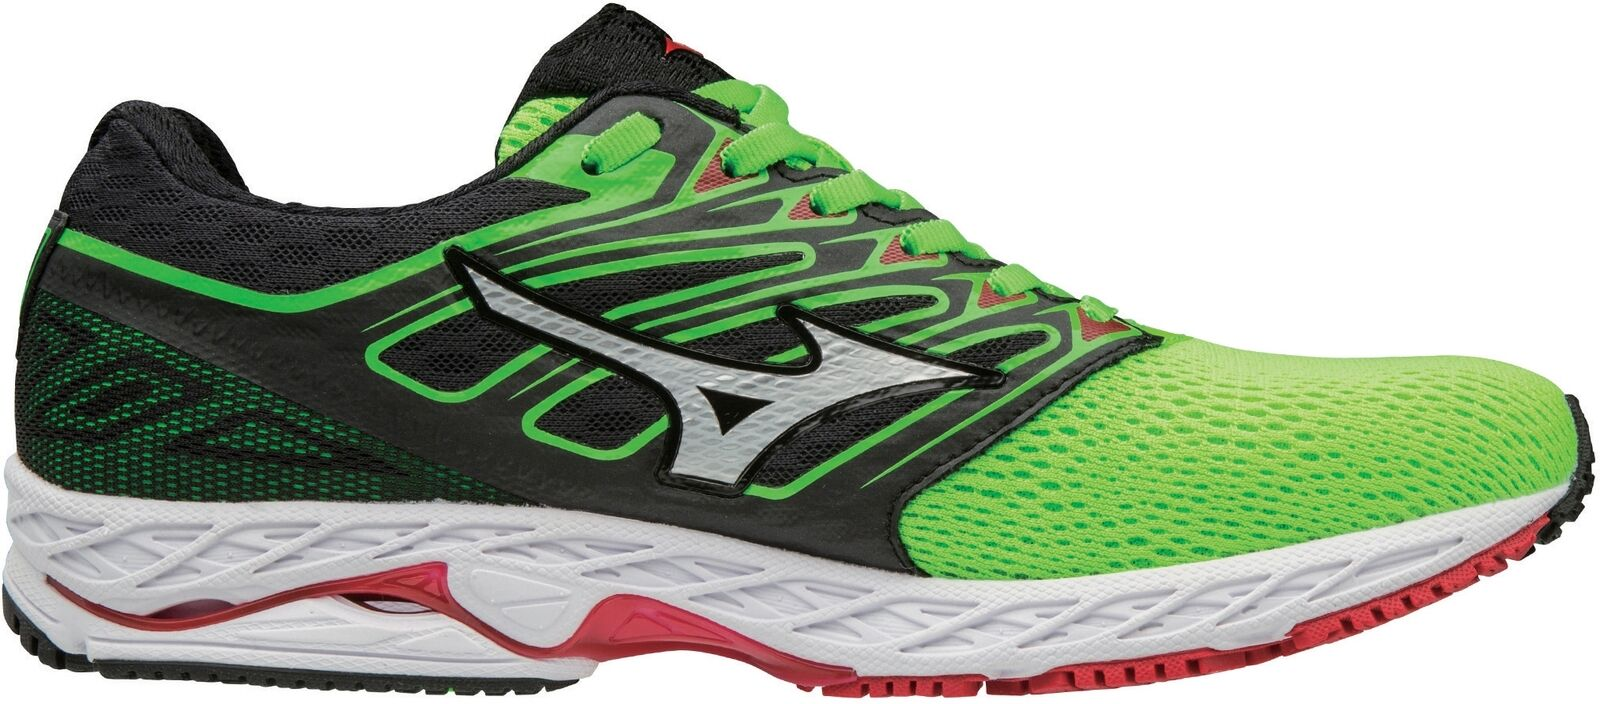 Wave Shadow Mens Running shoes - Green